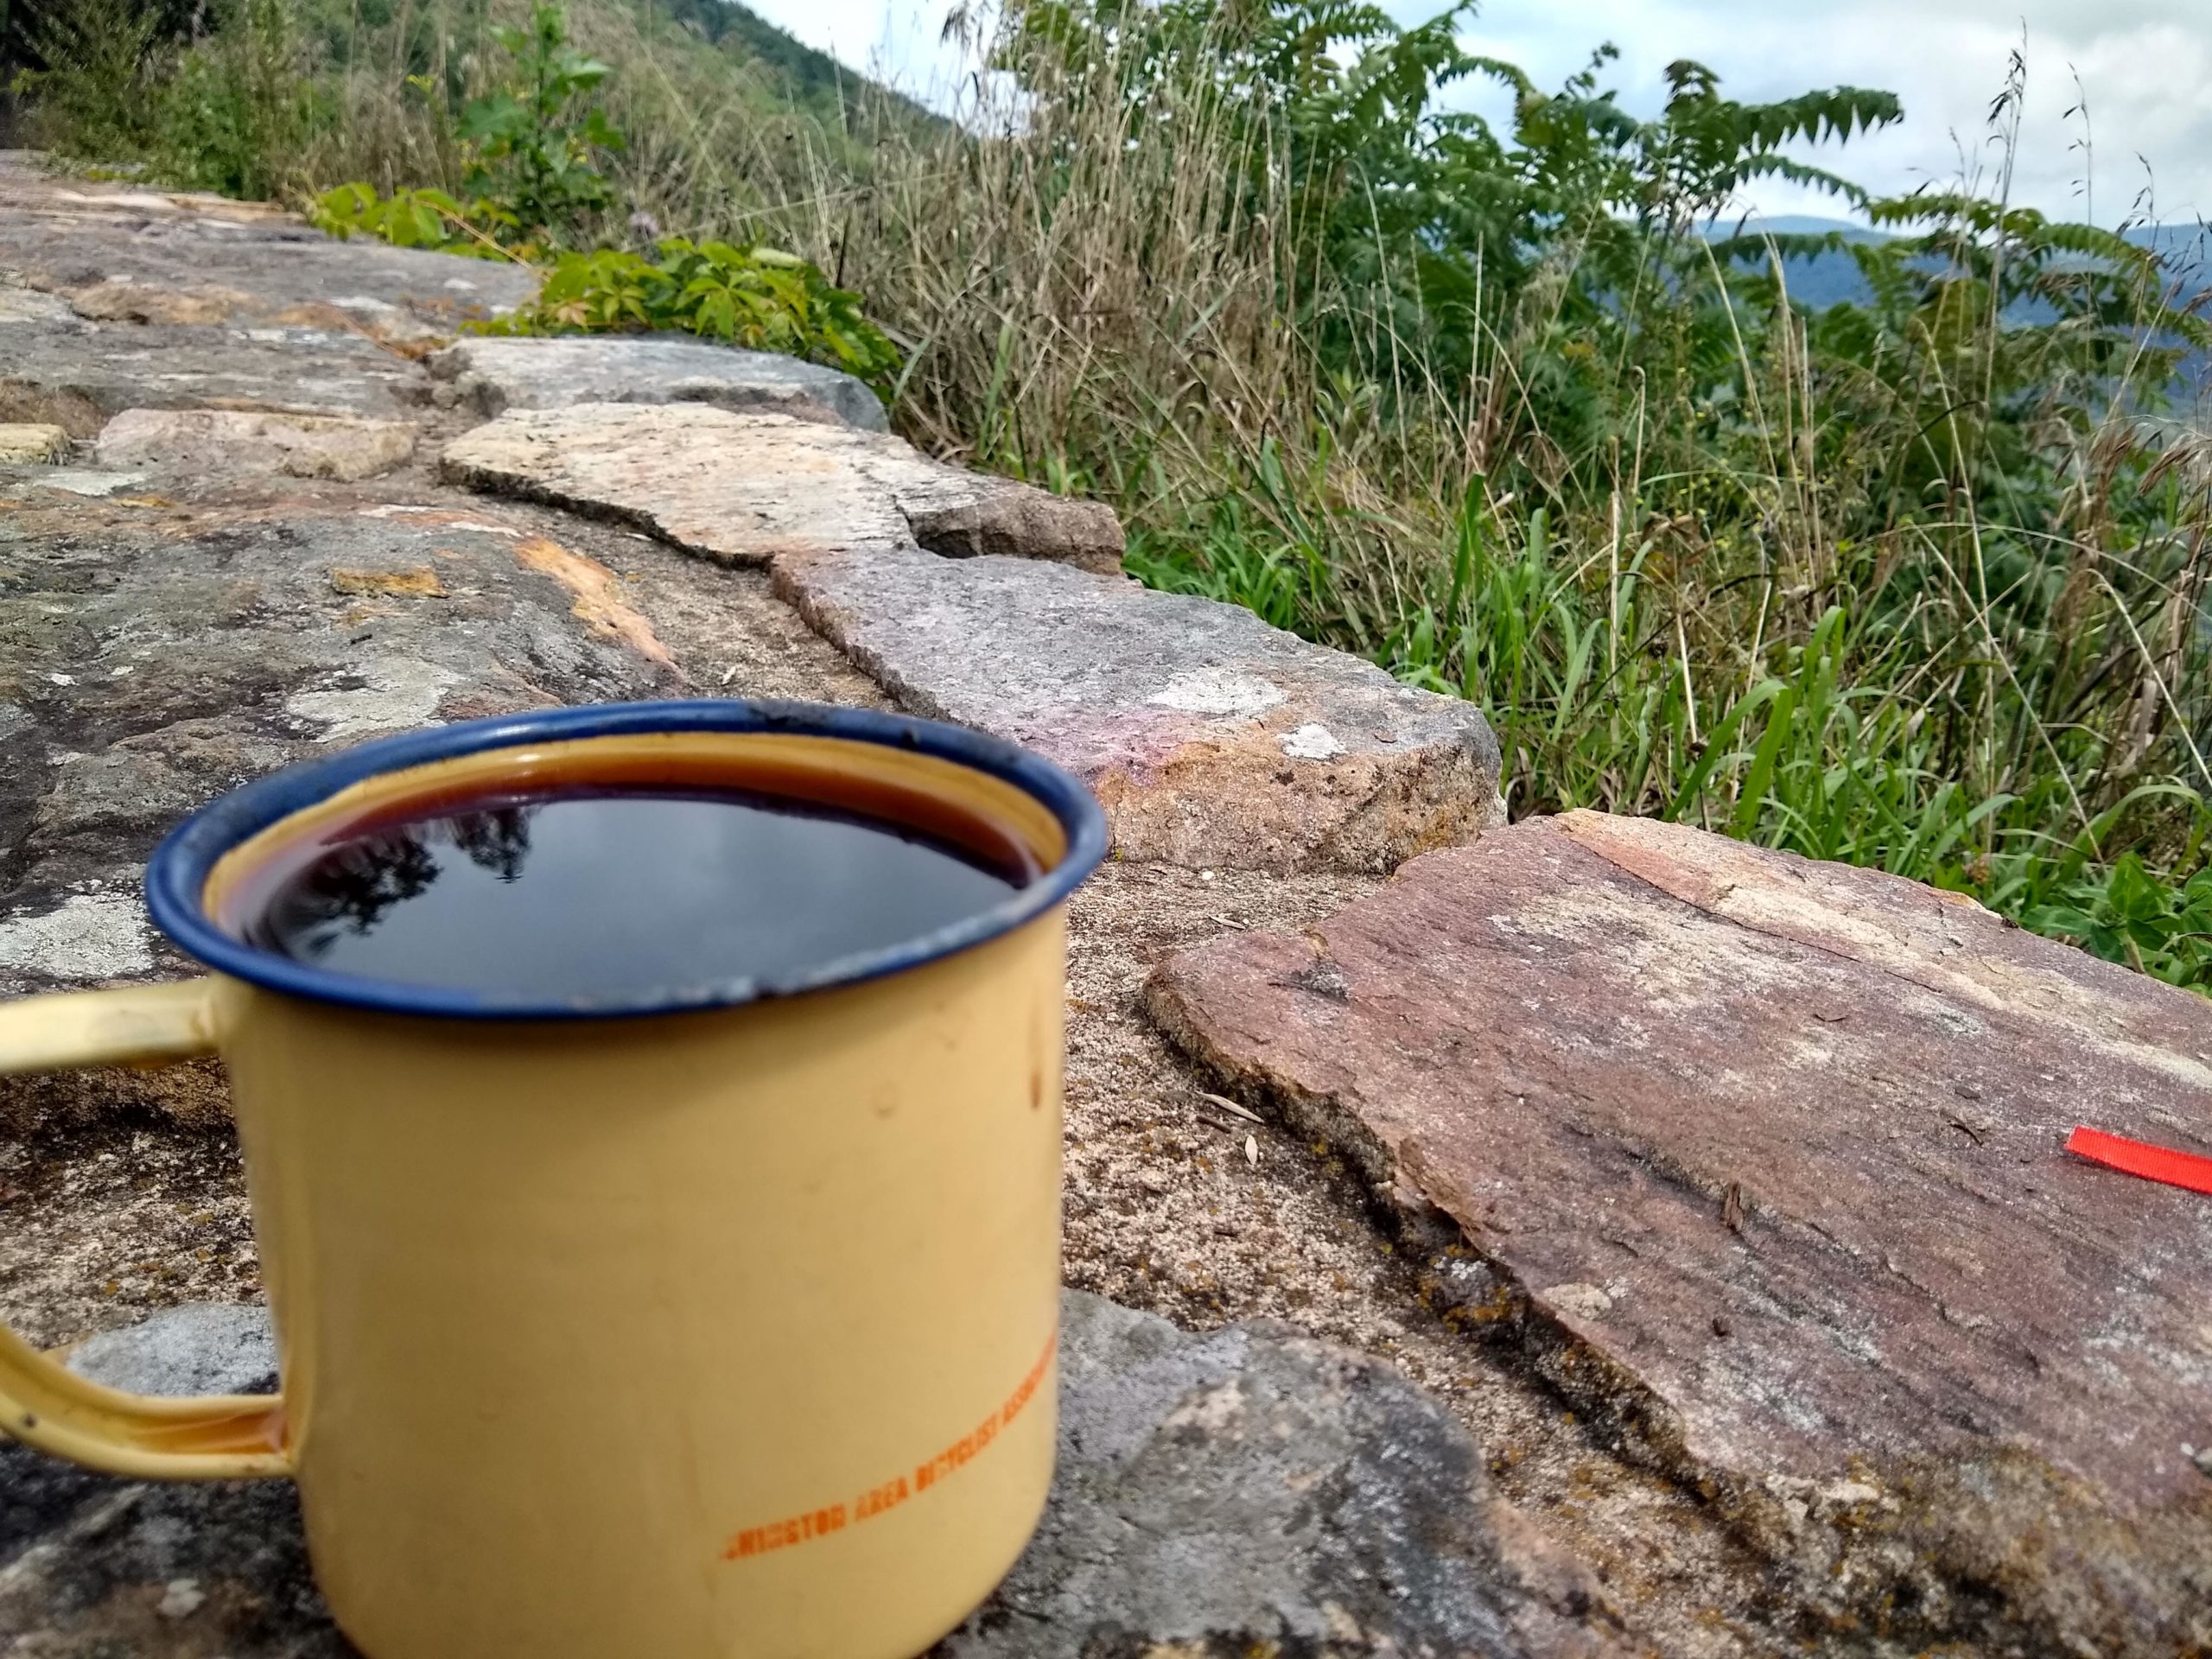 A metal WABA coffee mug sits on a rock ledge, there are grasses and trees behind. Its a nice vague generic artsy coffee on ledge vibe.